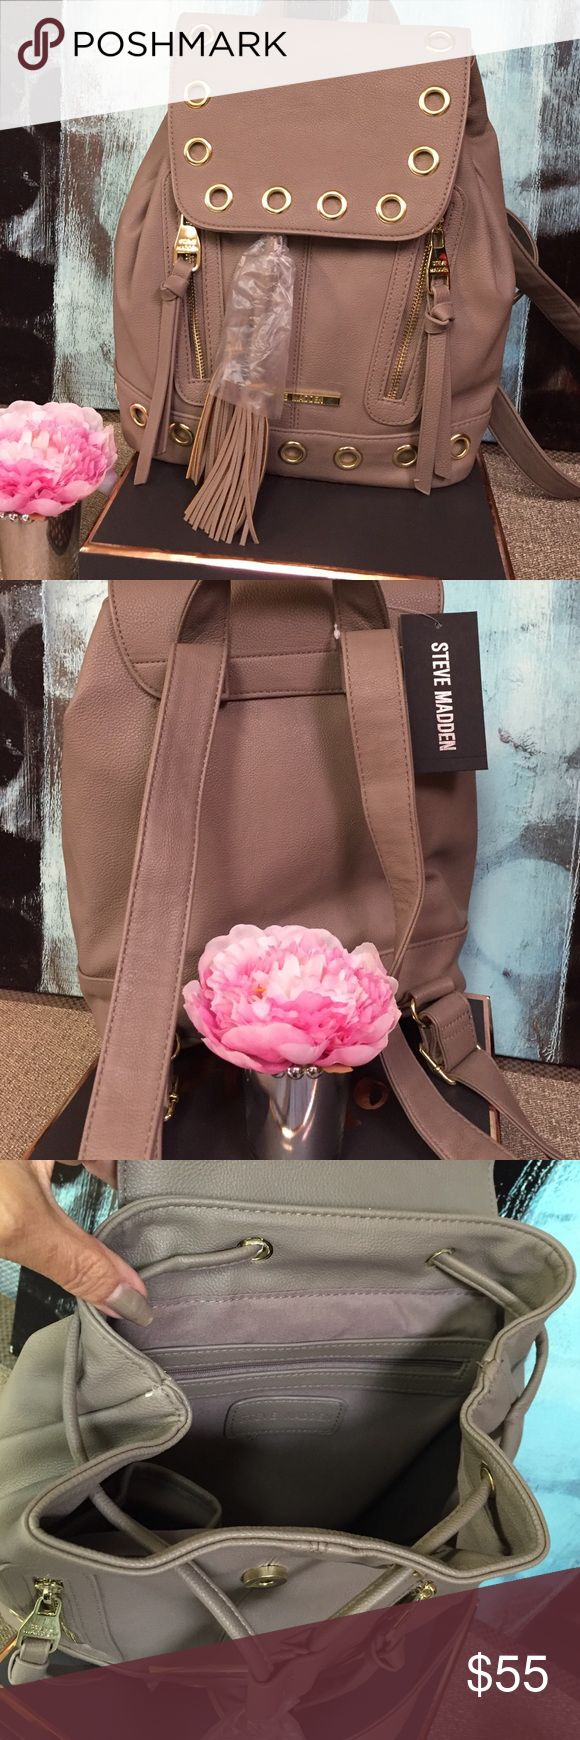 Steve Madden Backpack NWT faux leather backpack with functional zippers, gold hardware and long ties & tassels!  Super cute! ❌Trades. Price firm. Steve Madden Bags Backpacks